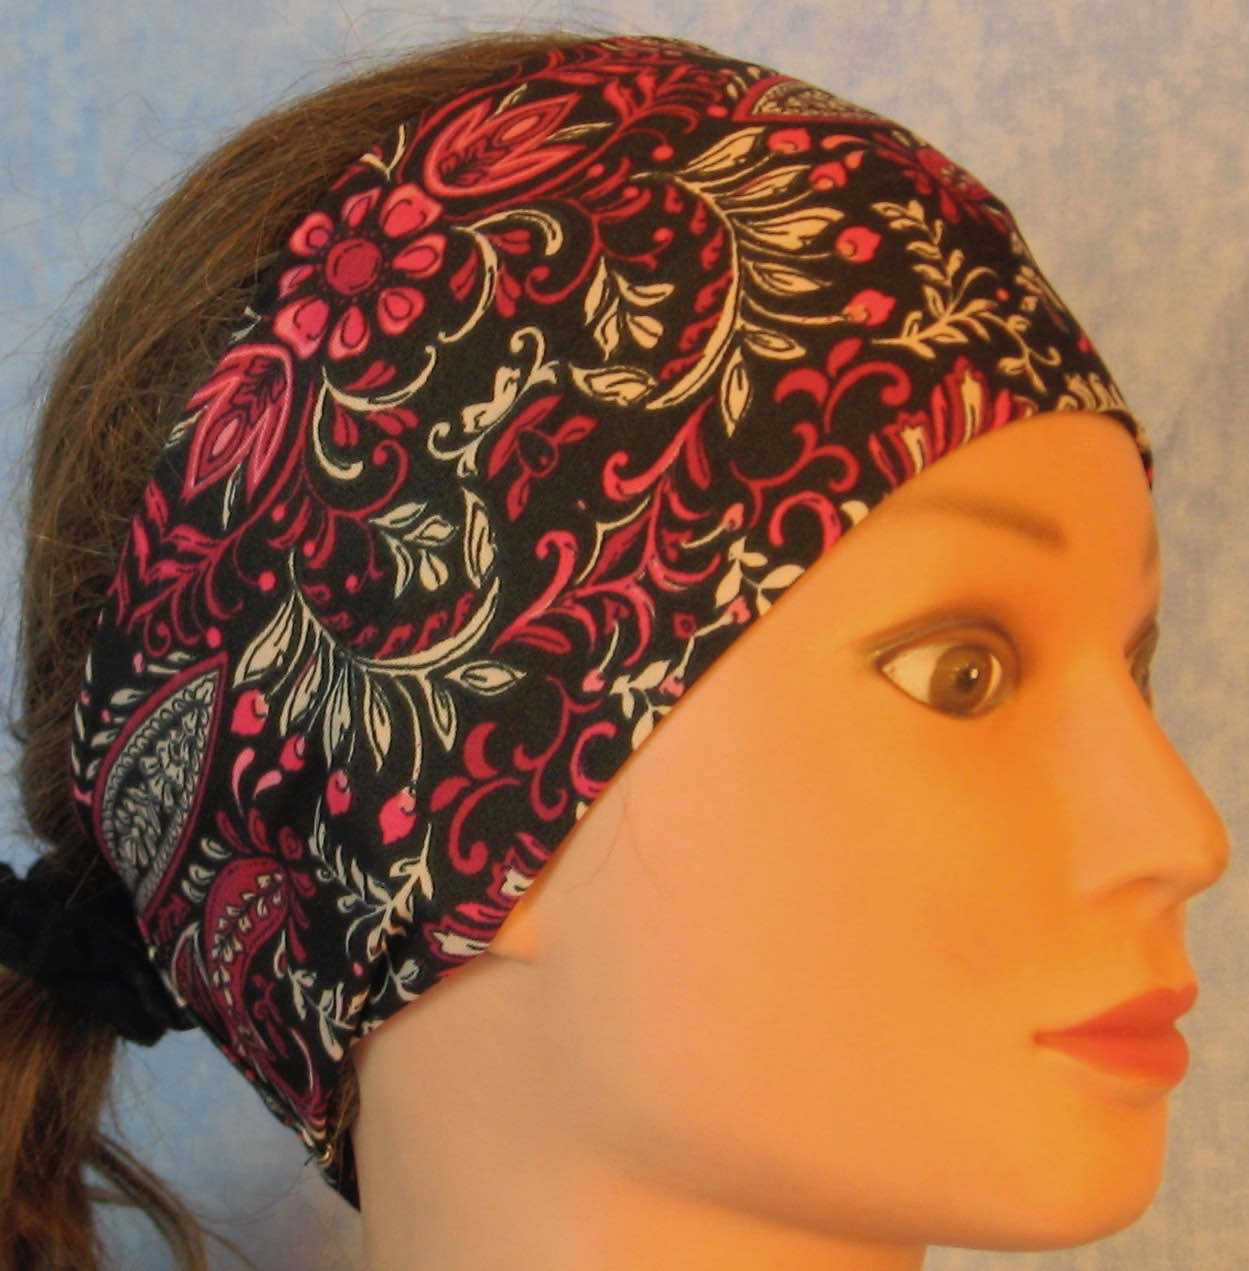 Headband-Pink Flower Paisley Leaves on Black Performance Knit-Adult M